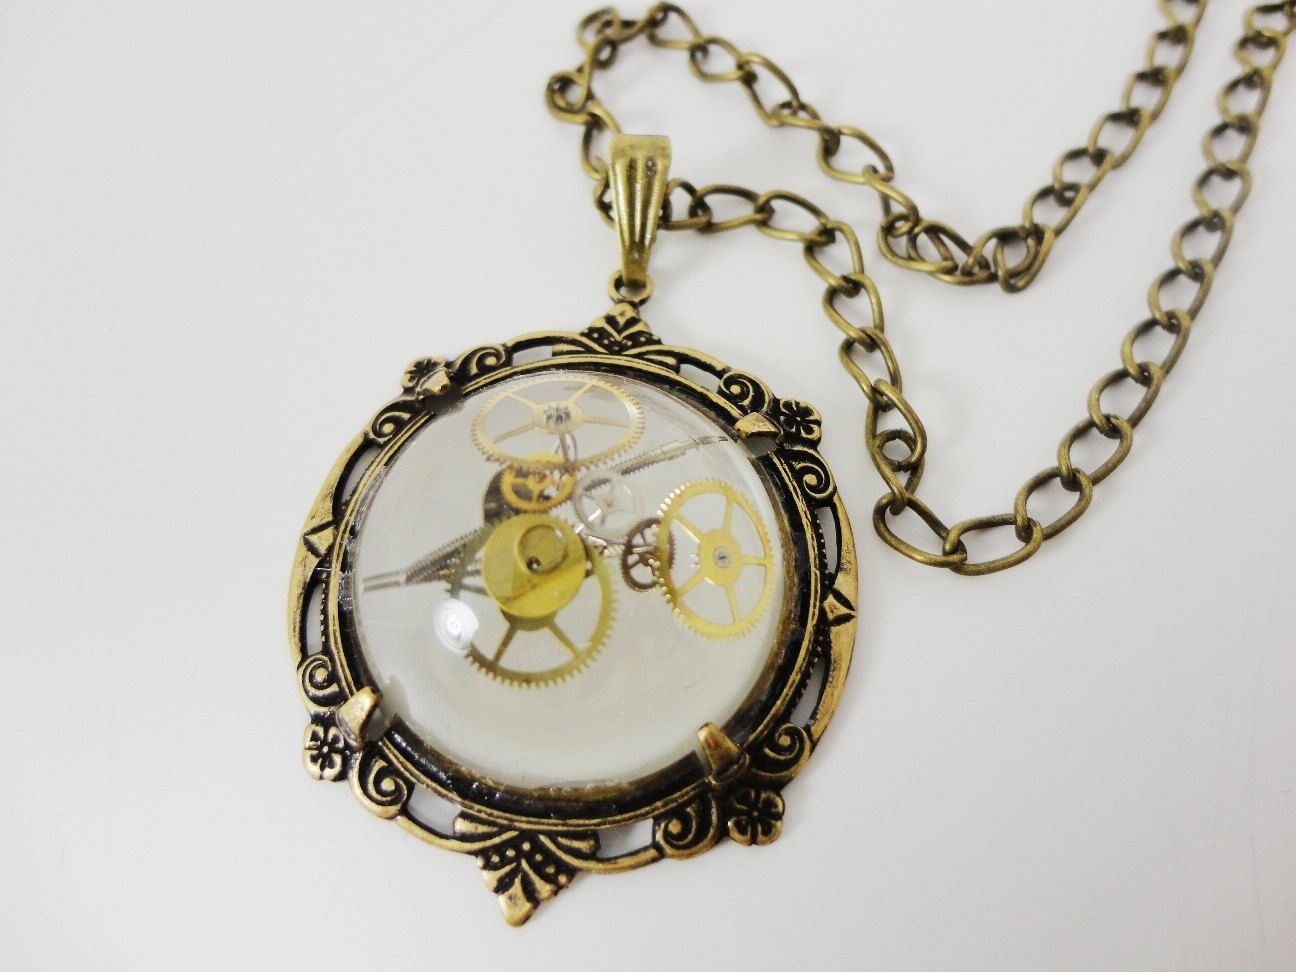 Steampunk Necklace Frozen Time Orb with gears in Victorian brass by Dr Brassy Steamington. $25.00, via Etsy.  Frozen in time!